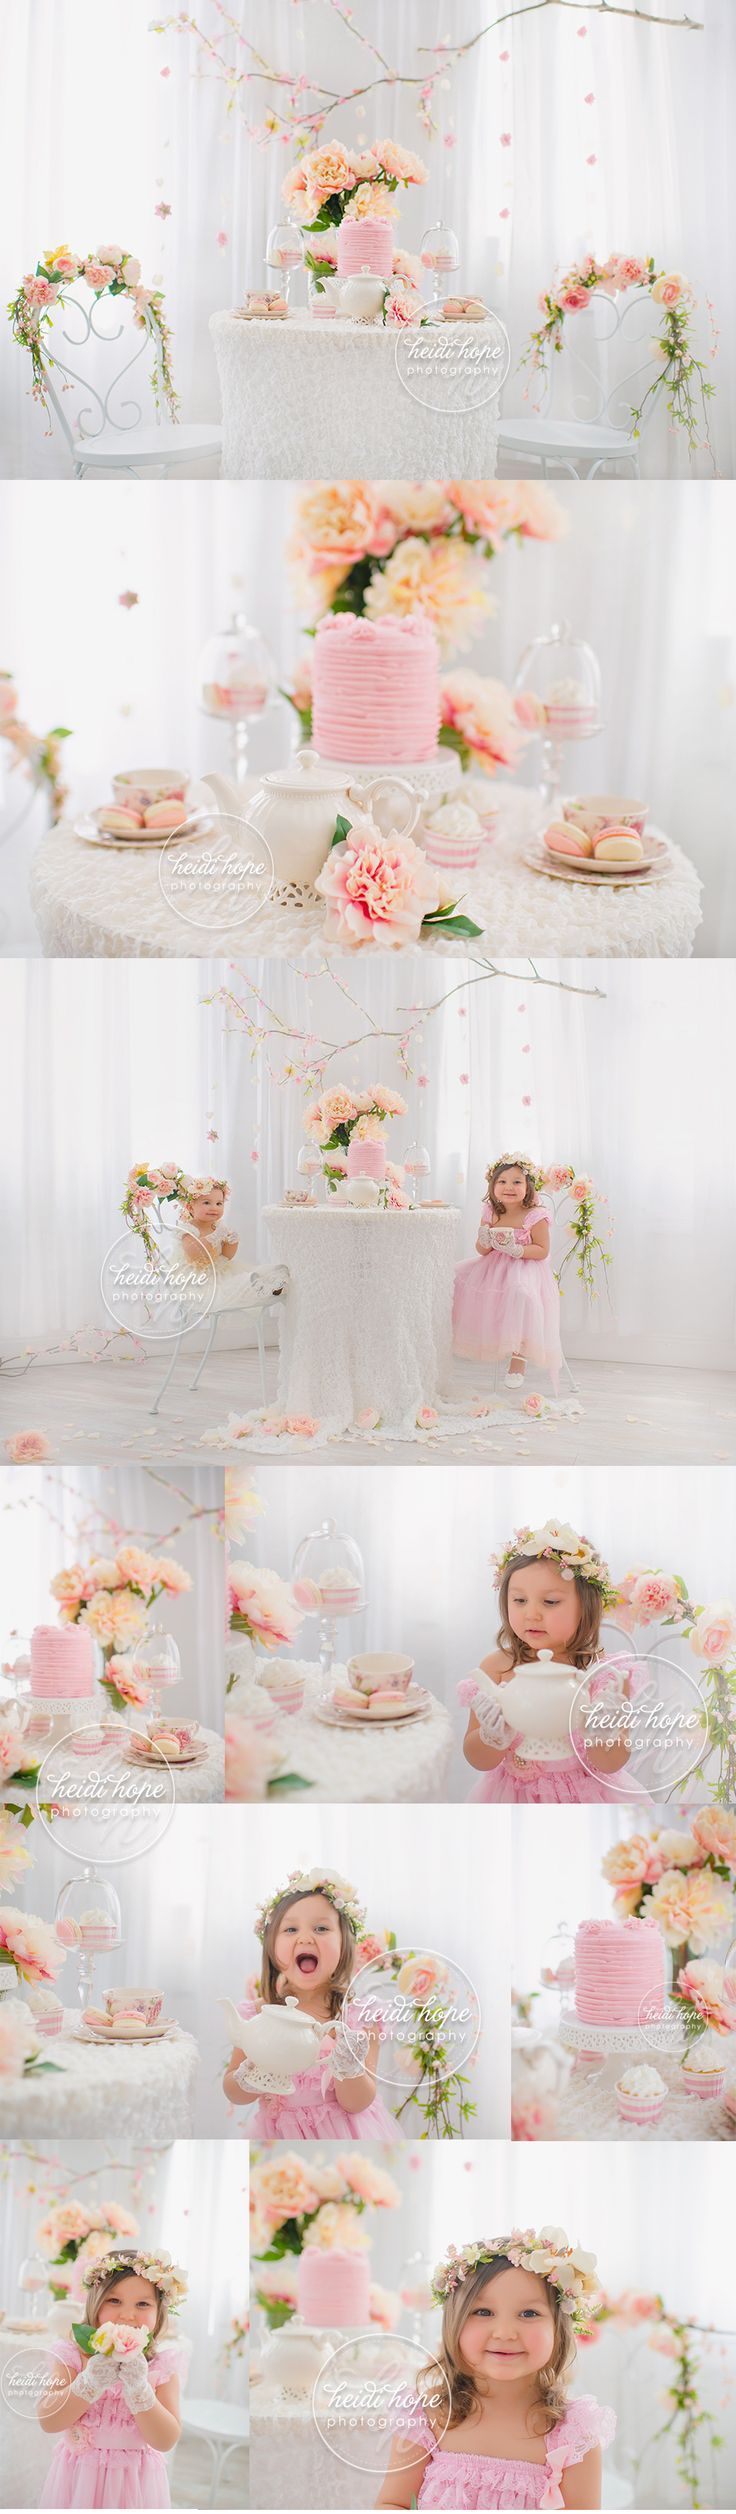 A sweet sneak peek of a recent tea party session.  These girls were too cute!  boston childrens photographer tea party session